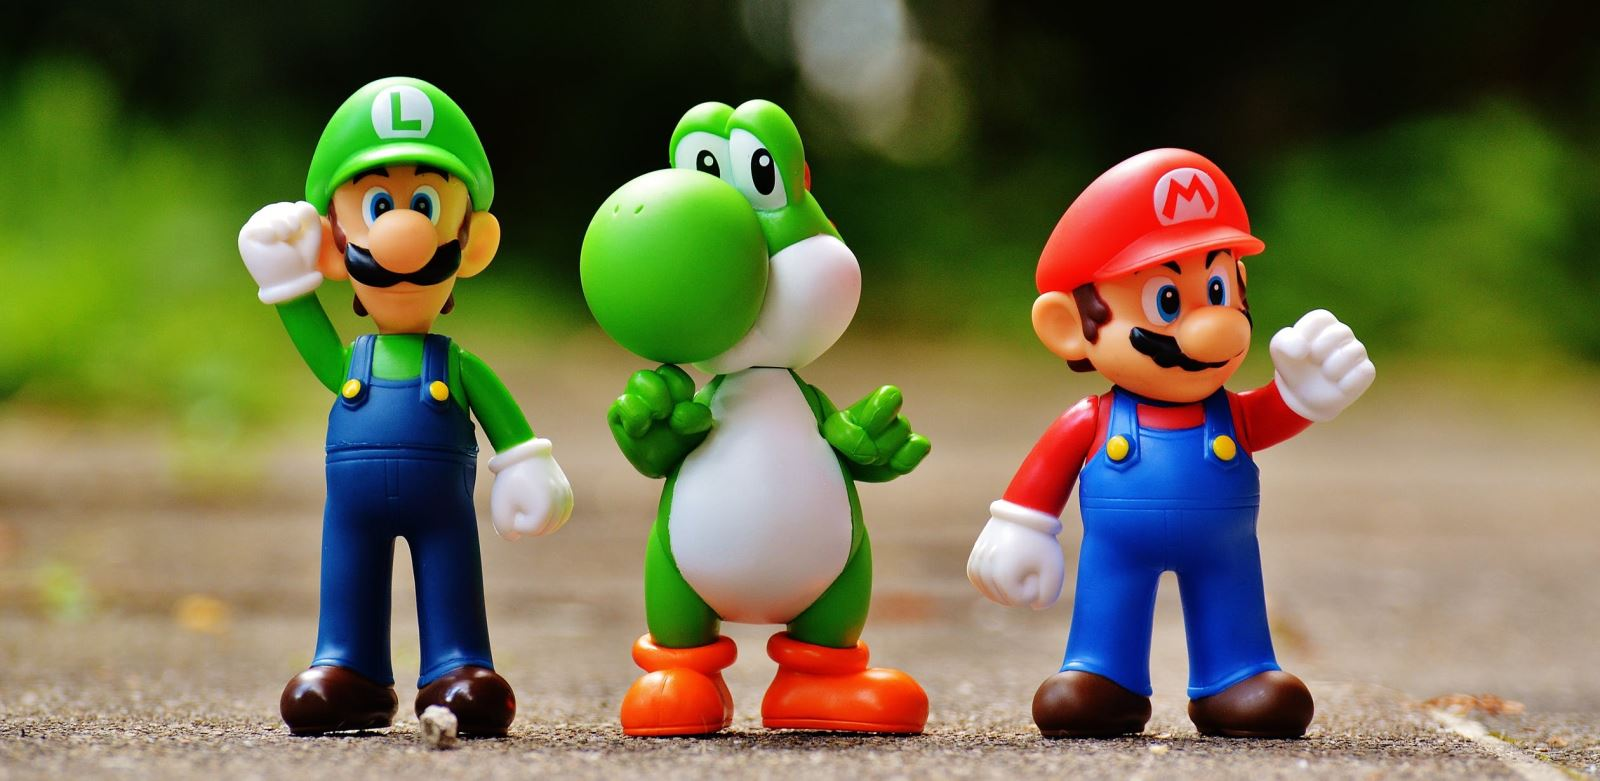 Left to Right: Luigi, Yoshi, and Mario